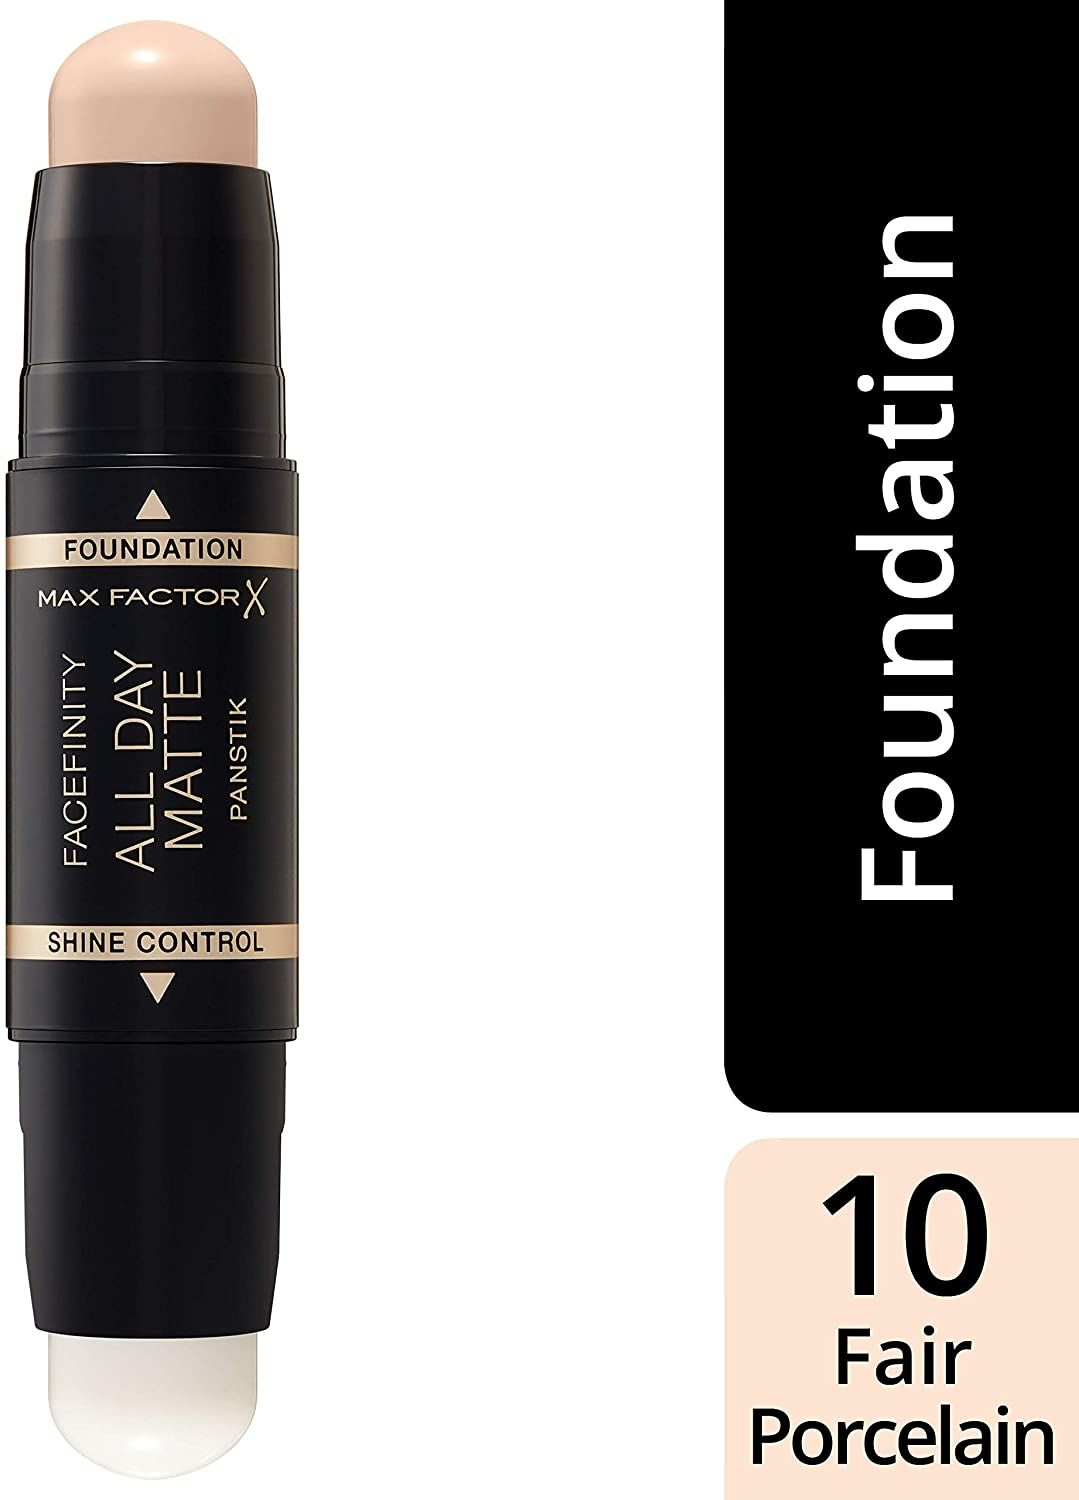 3x Max Factor Facefinity All Day Matte 2in1 PanStik Foundation 10 Fair Porcelain